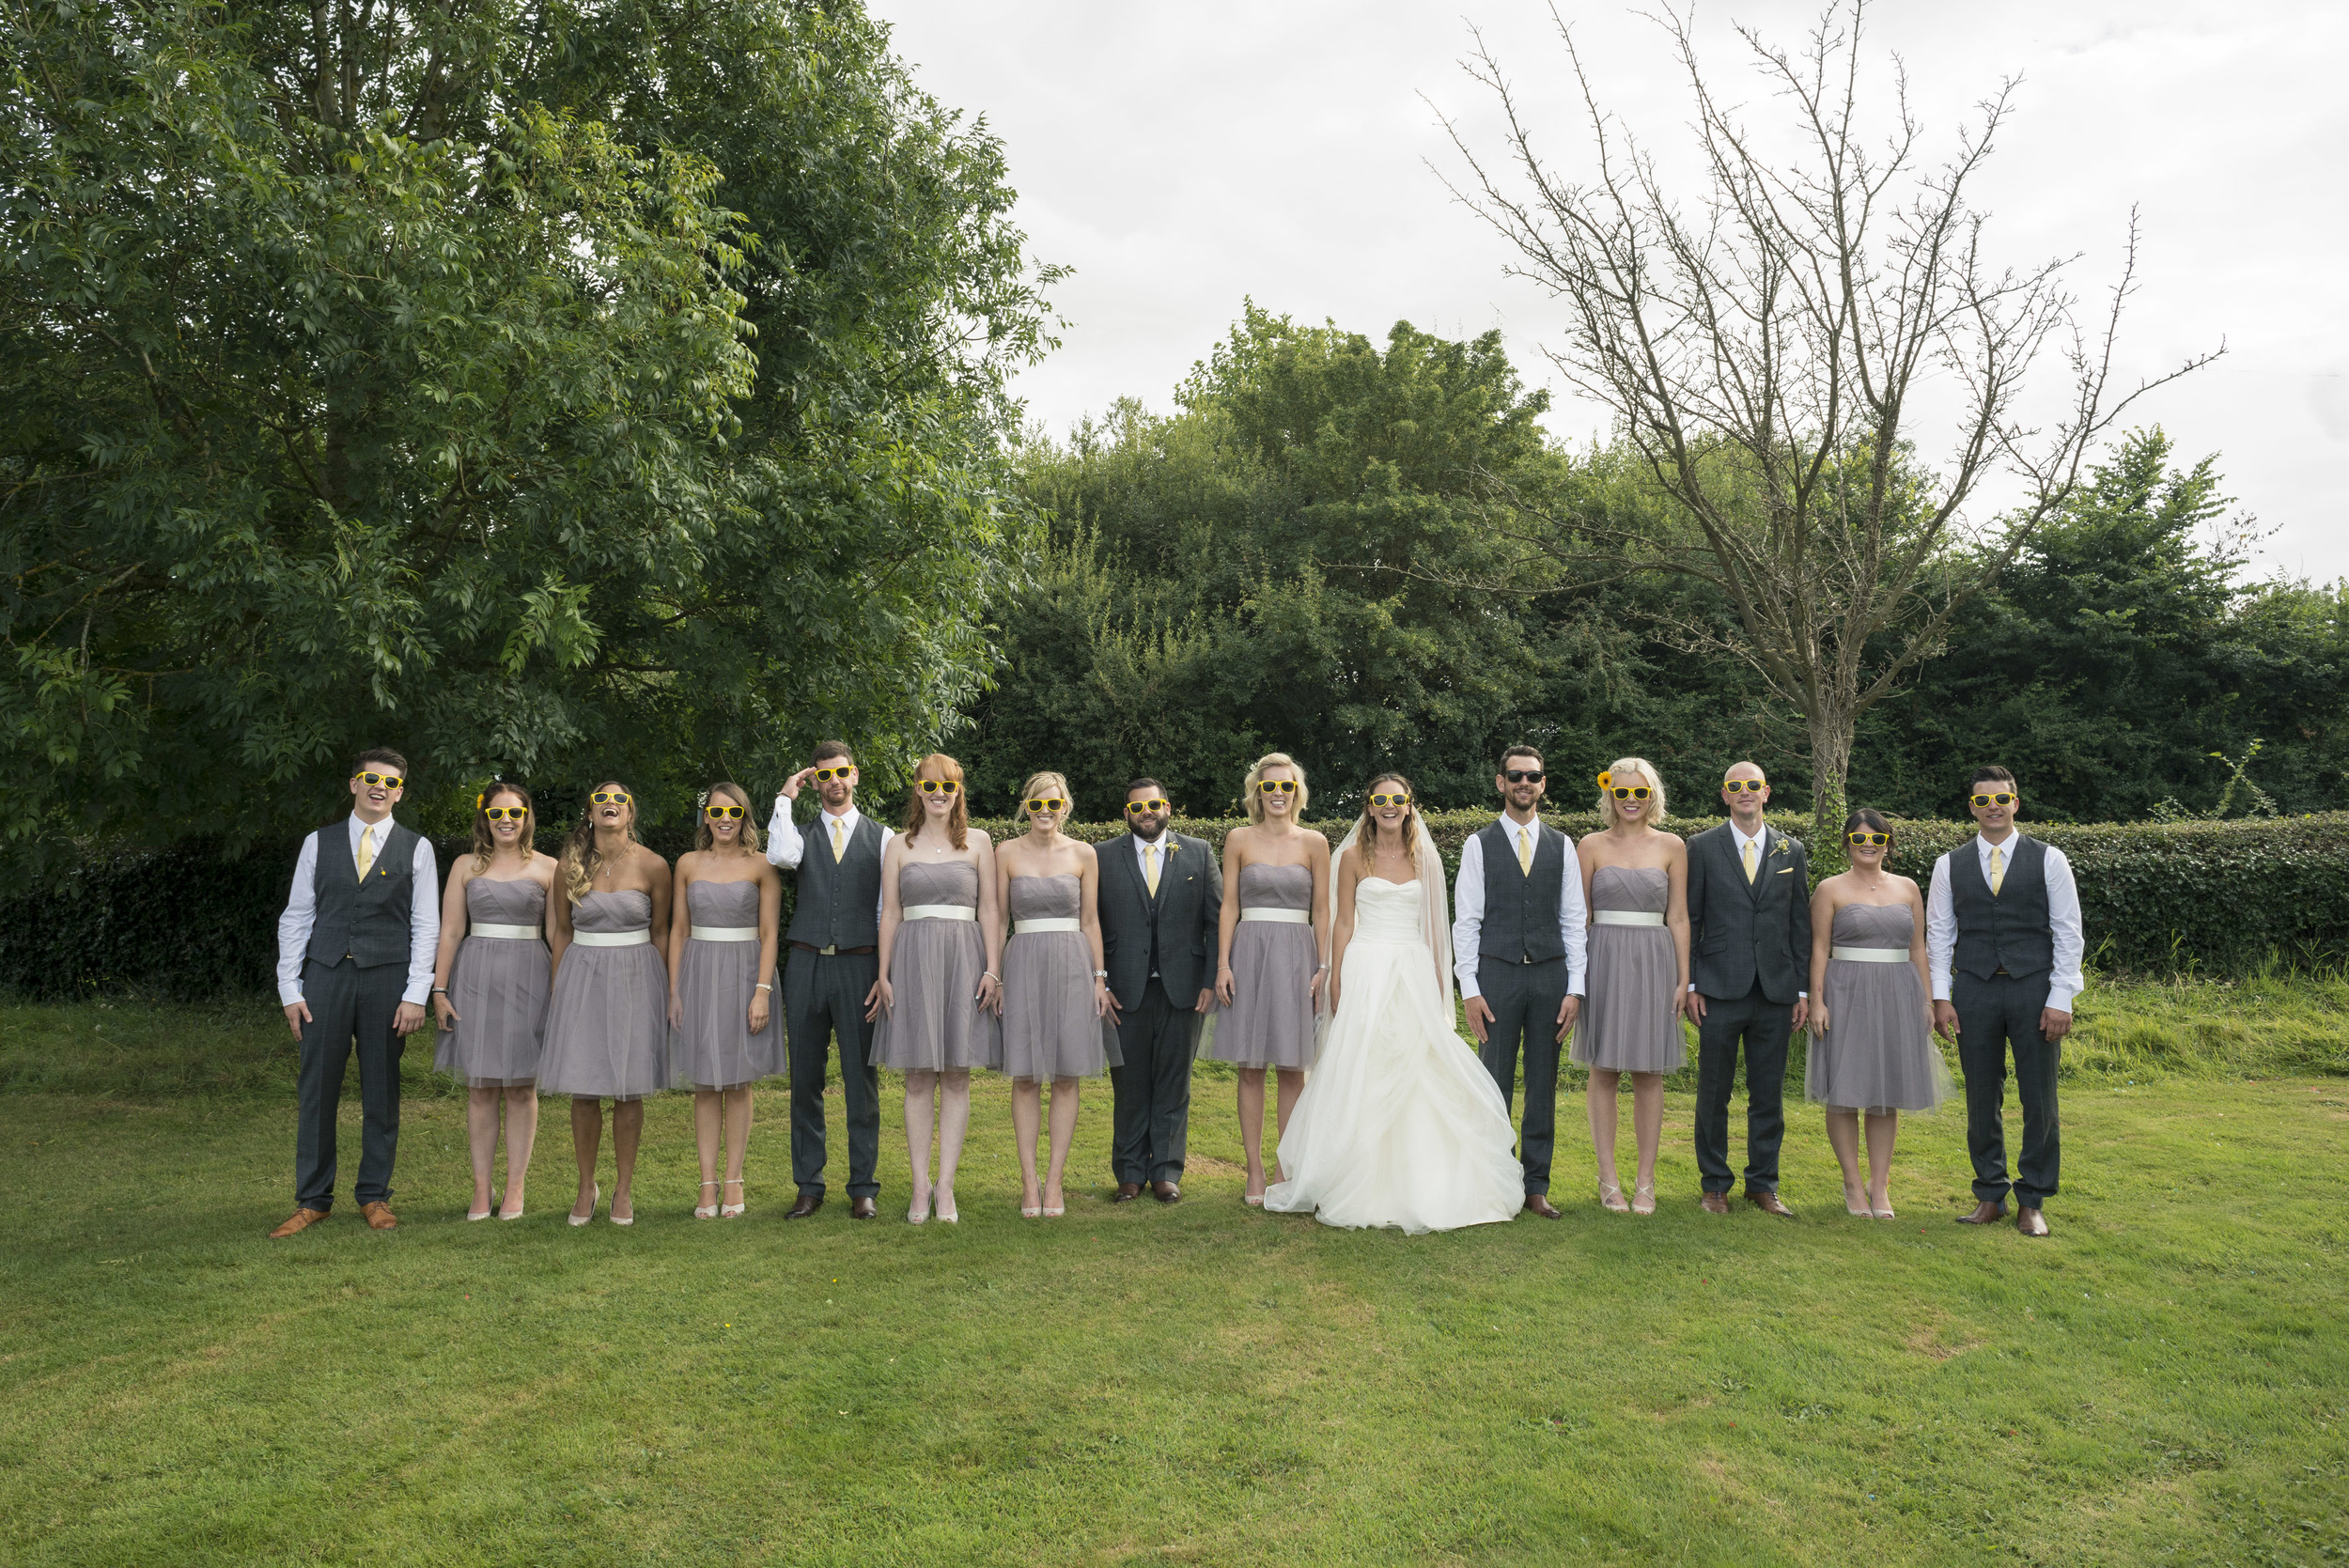 rotherwick-wedding-8.jpg